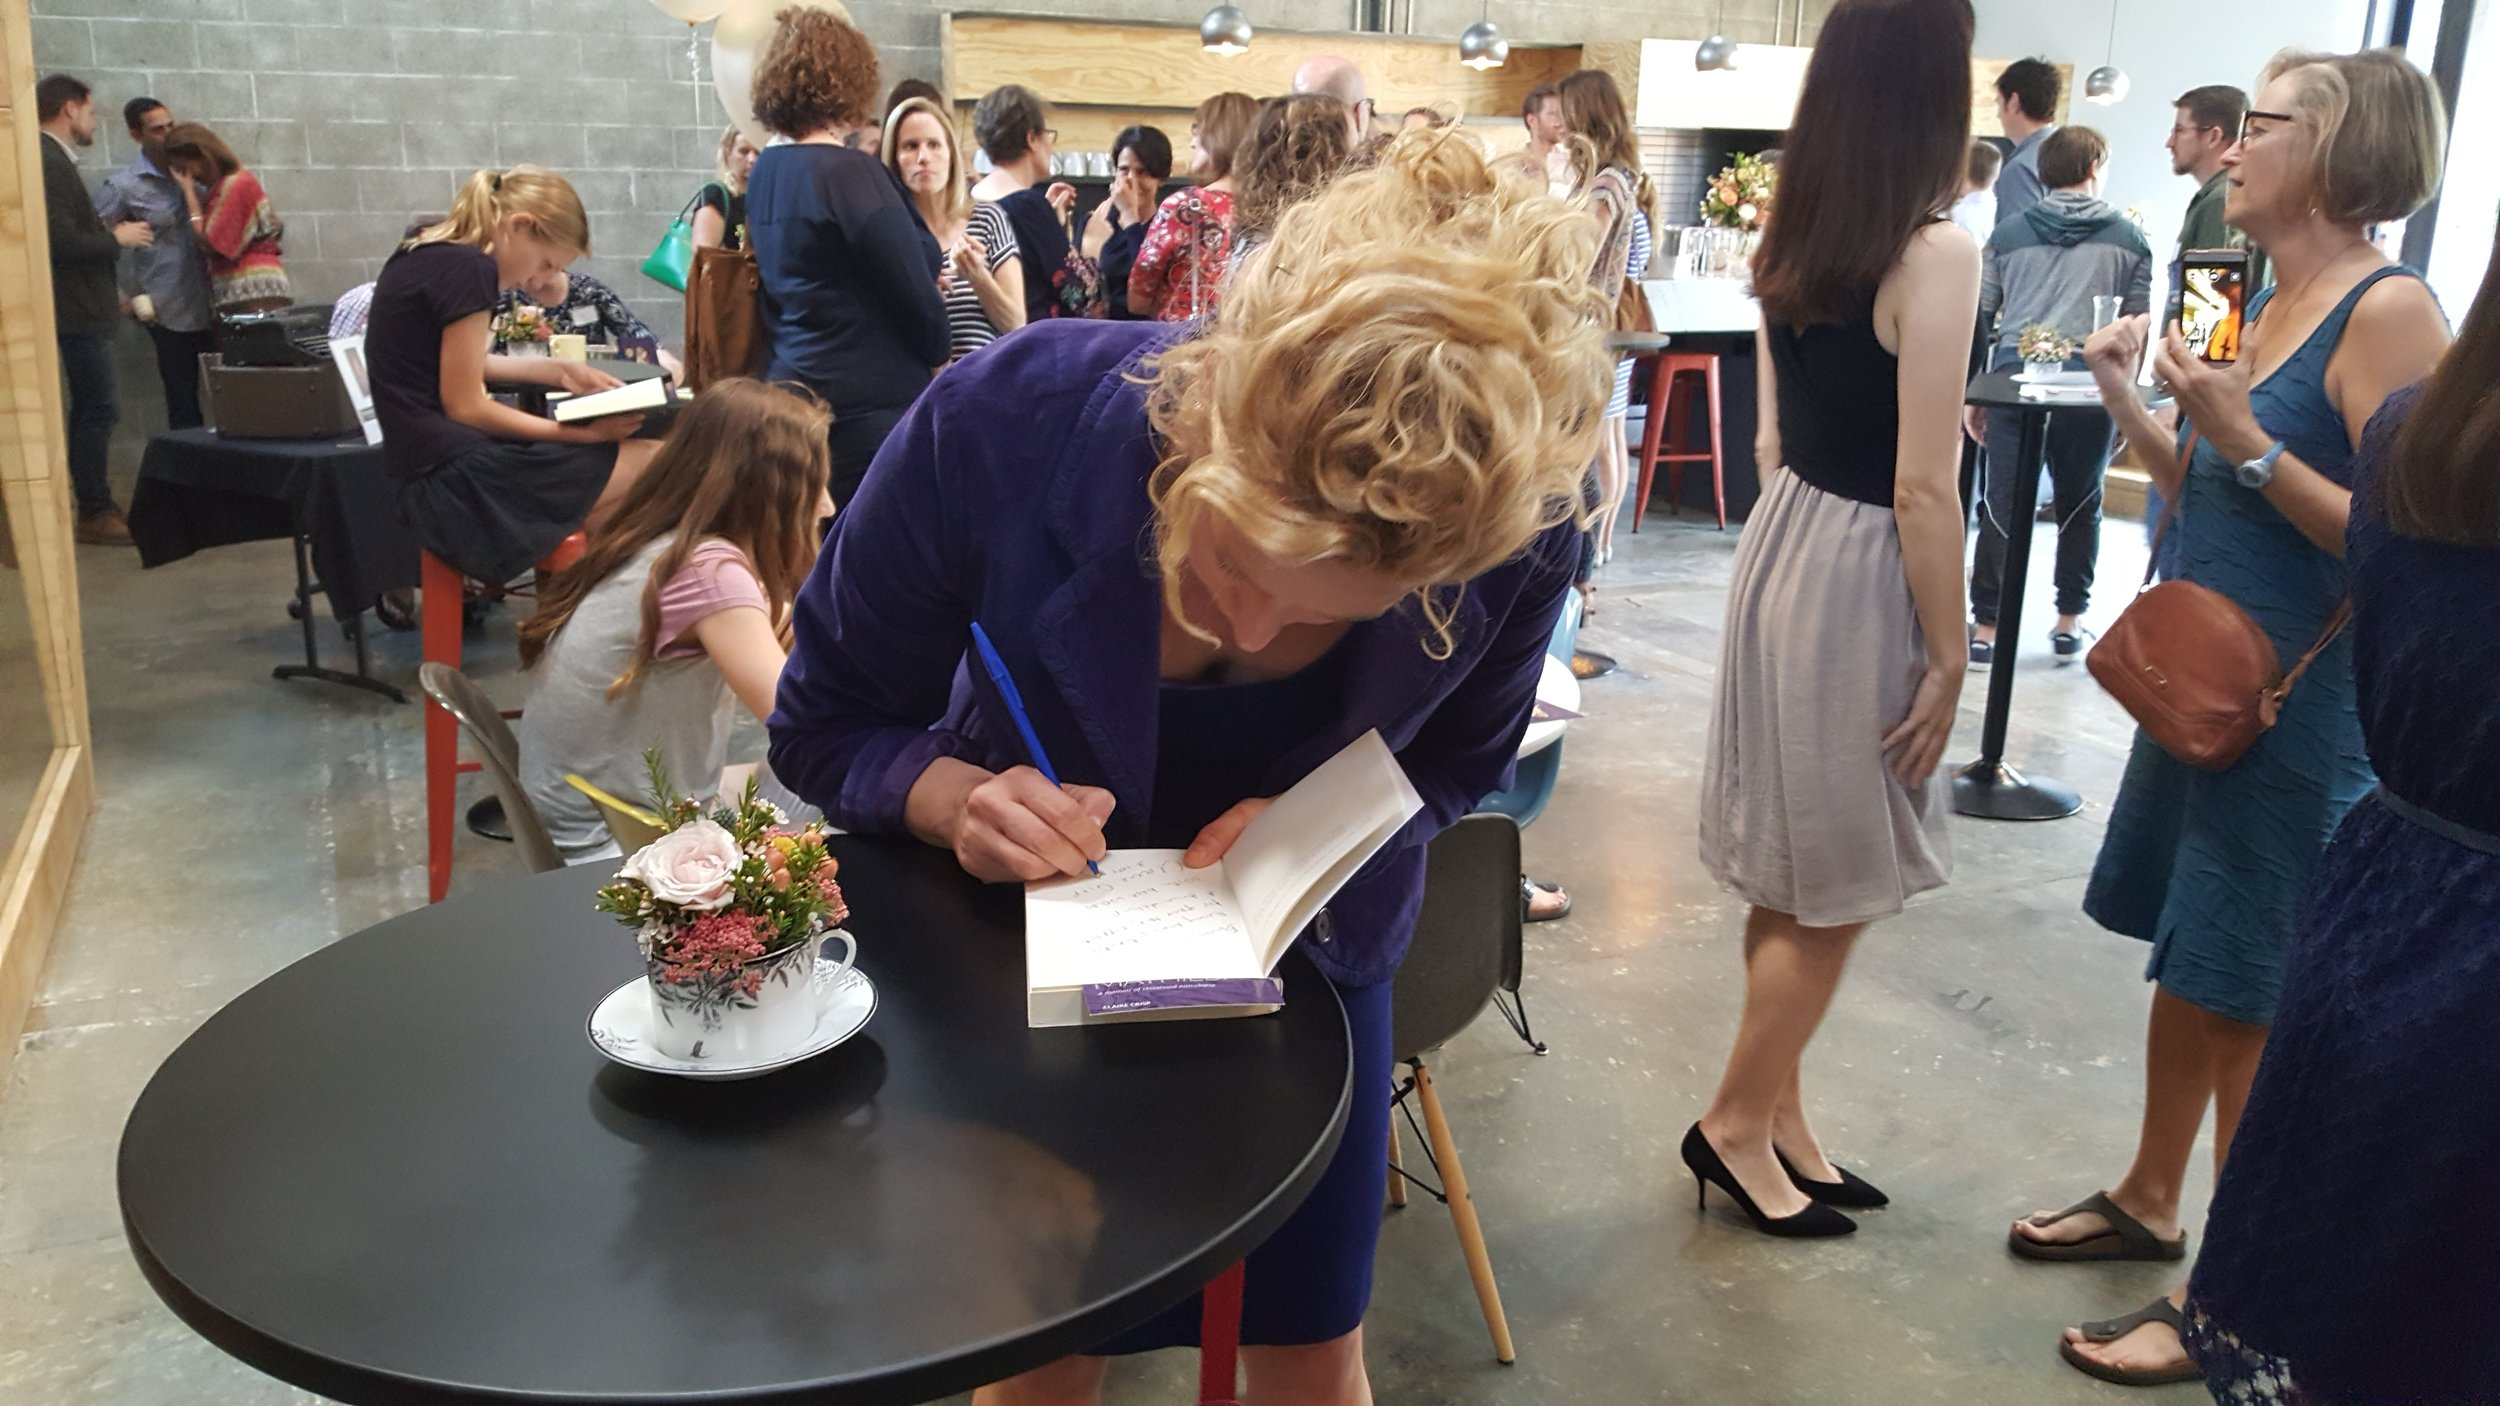 I loved signing books for friends who have been supportive of our journey.